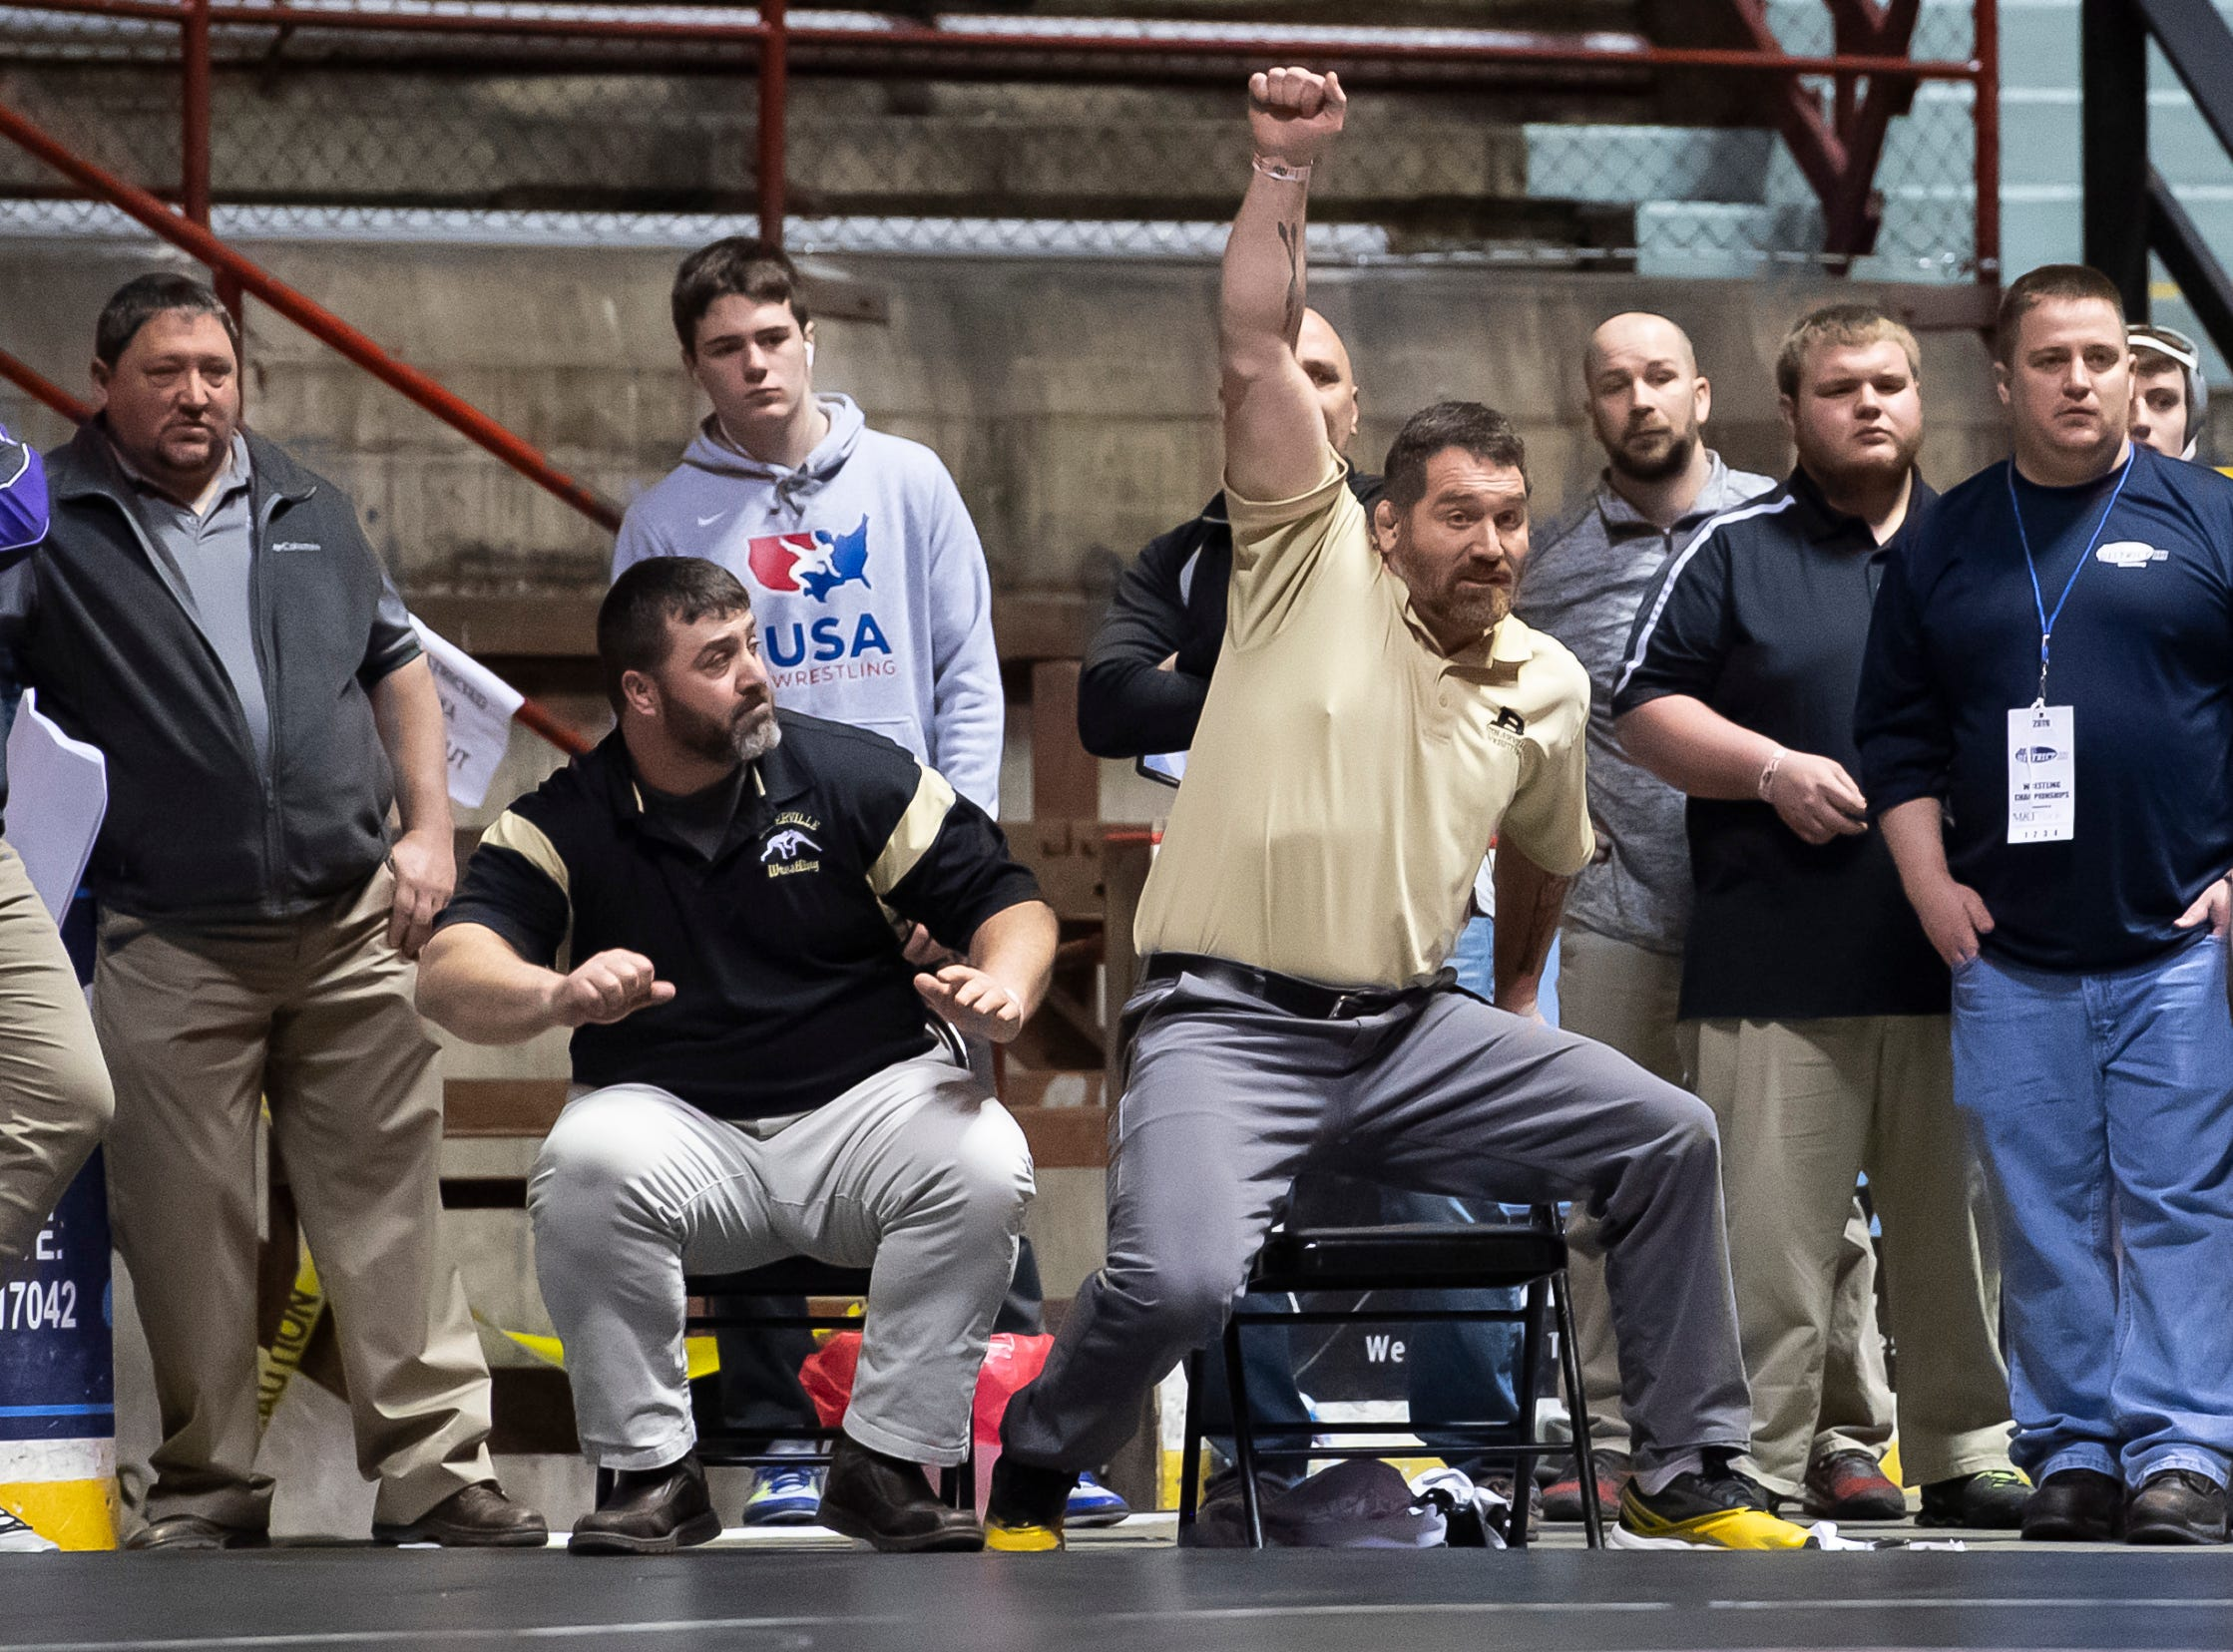 Biglerville head coach Ken Haines raises his arm as Eli Tuckey defeats Newport's Dorian Gonzalez during a 132-pound semifinal bout at the District 3 wrestling championships at Hersheypark Arena Saturday, February 23, 2019. Tuckey won by decision 3-2.